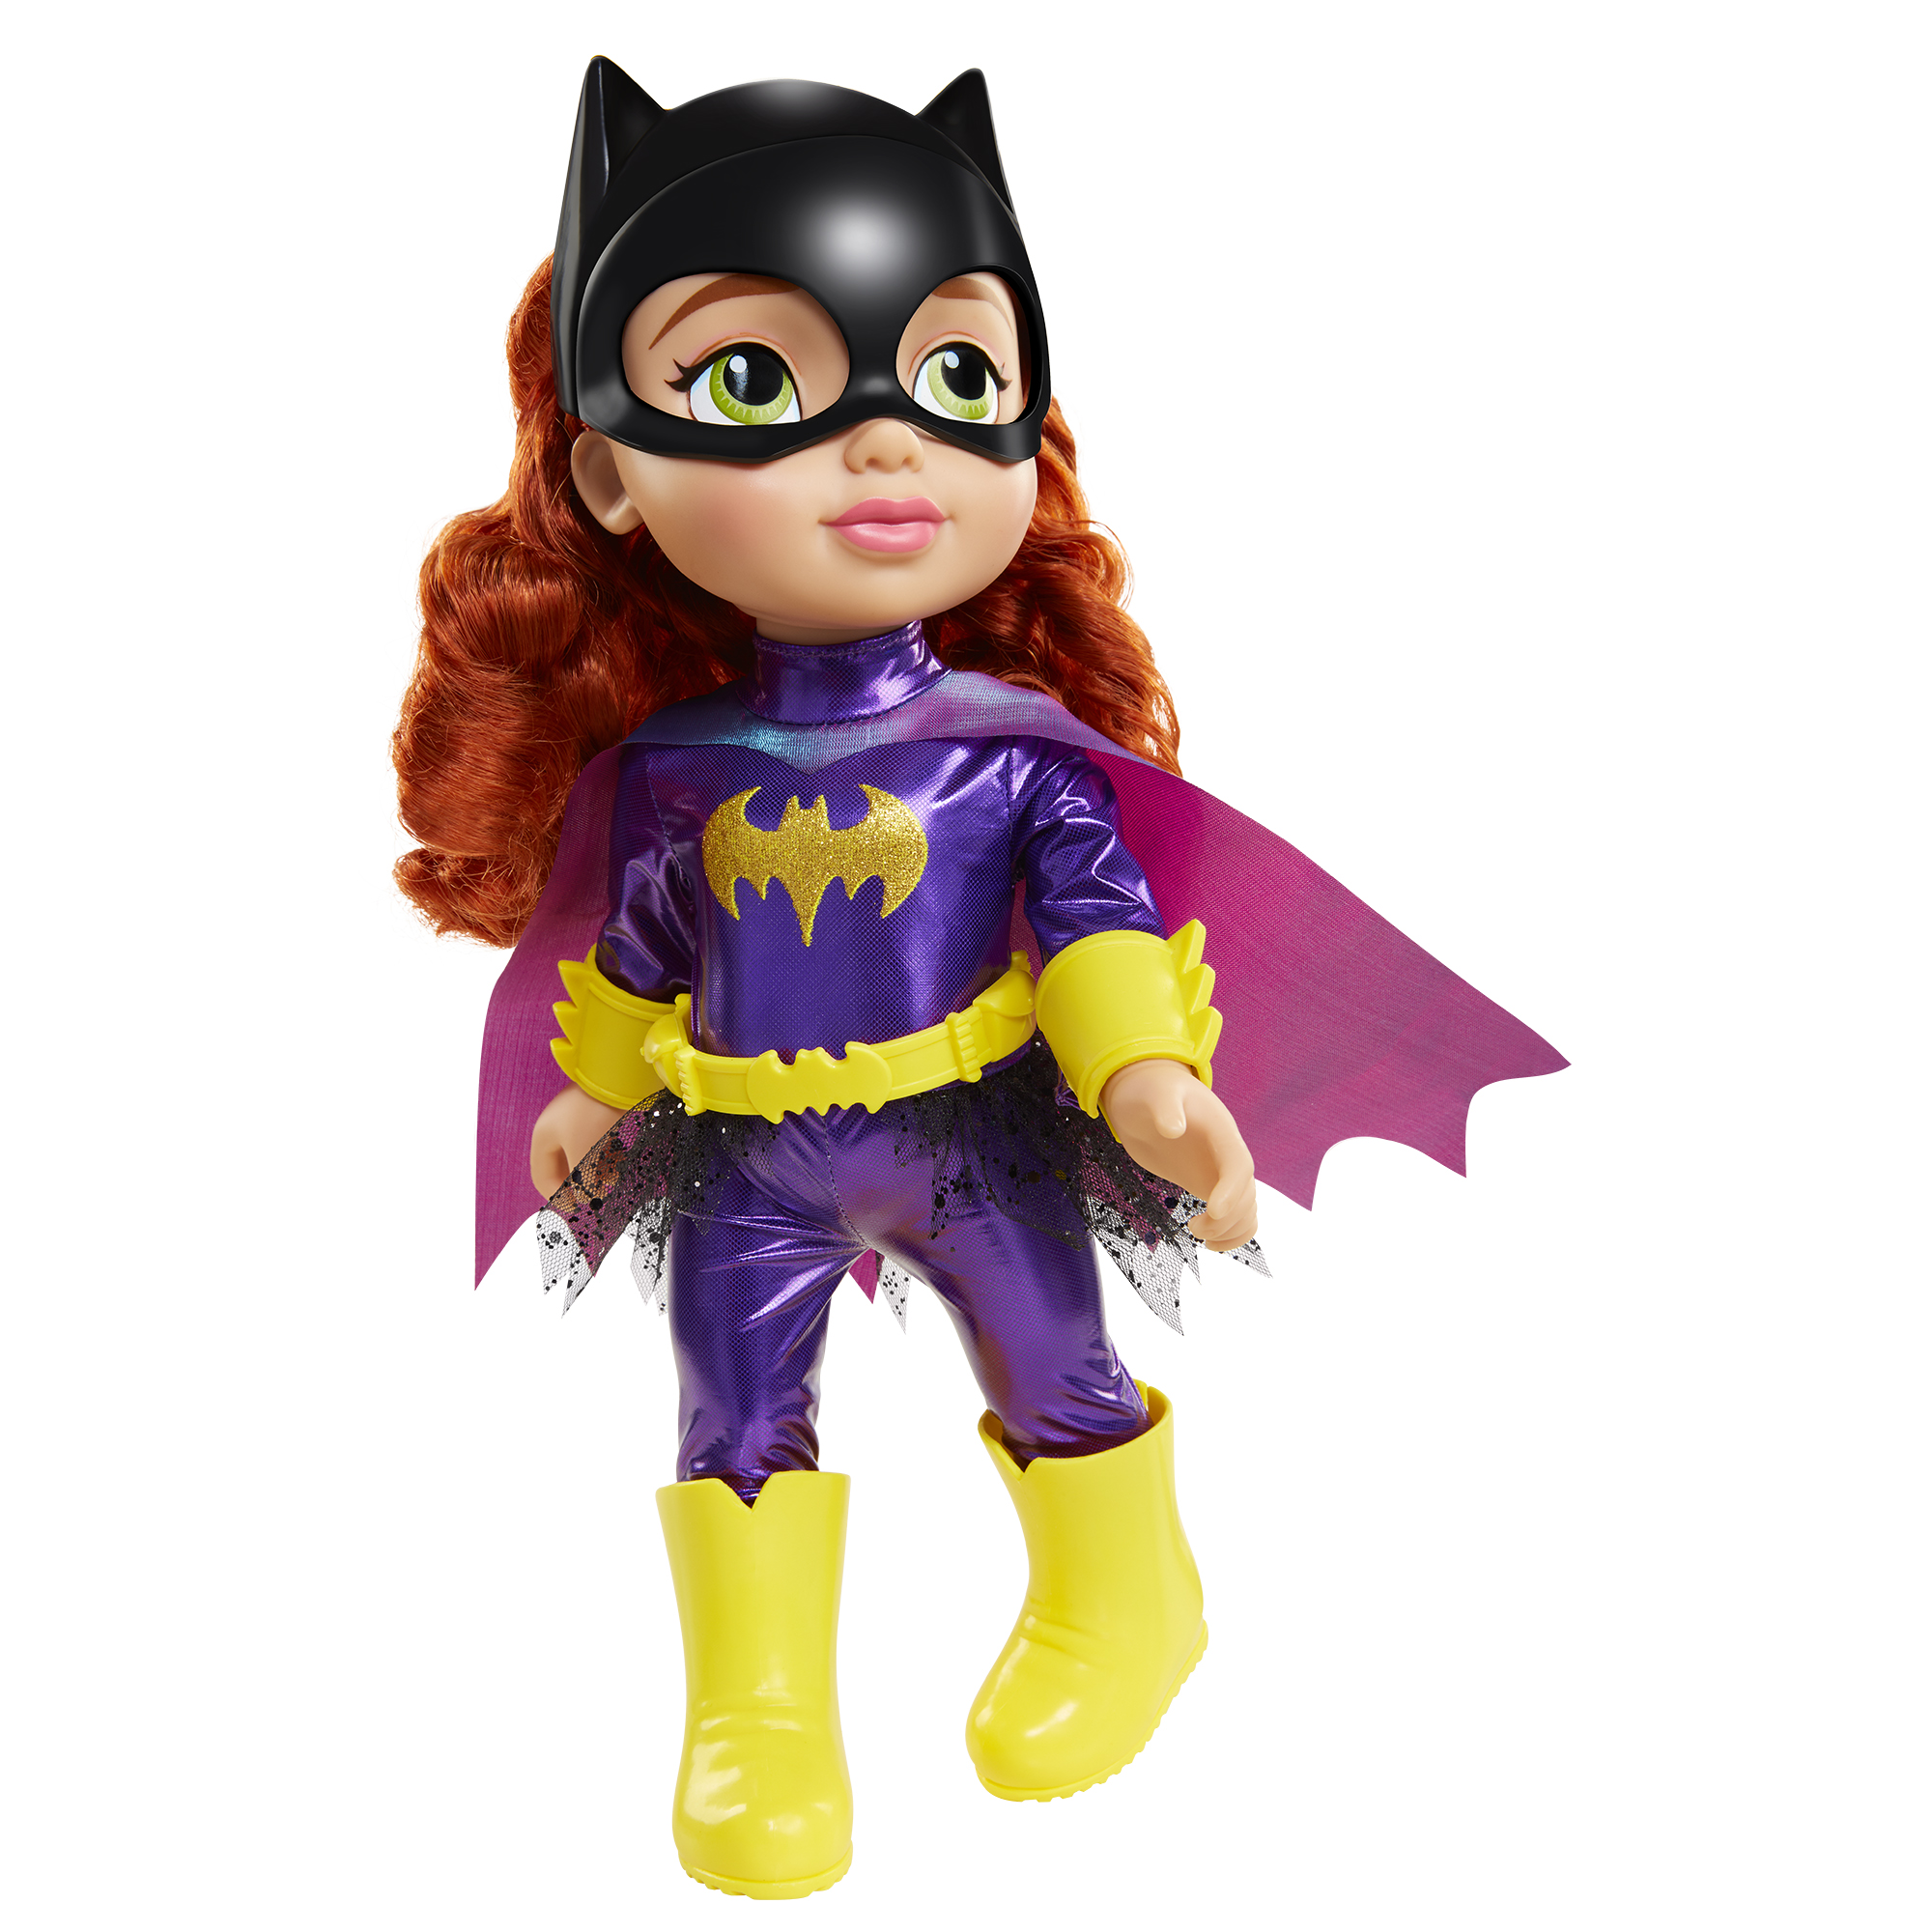 "DC SuperHero Girls Batgirl 15"" Toddler Doll"